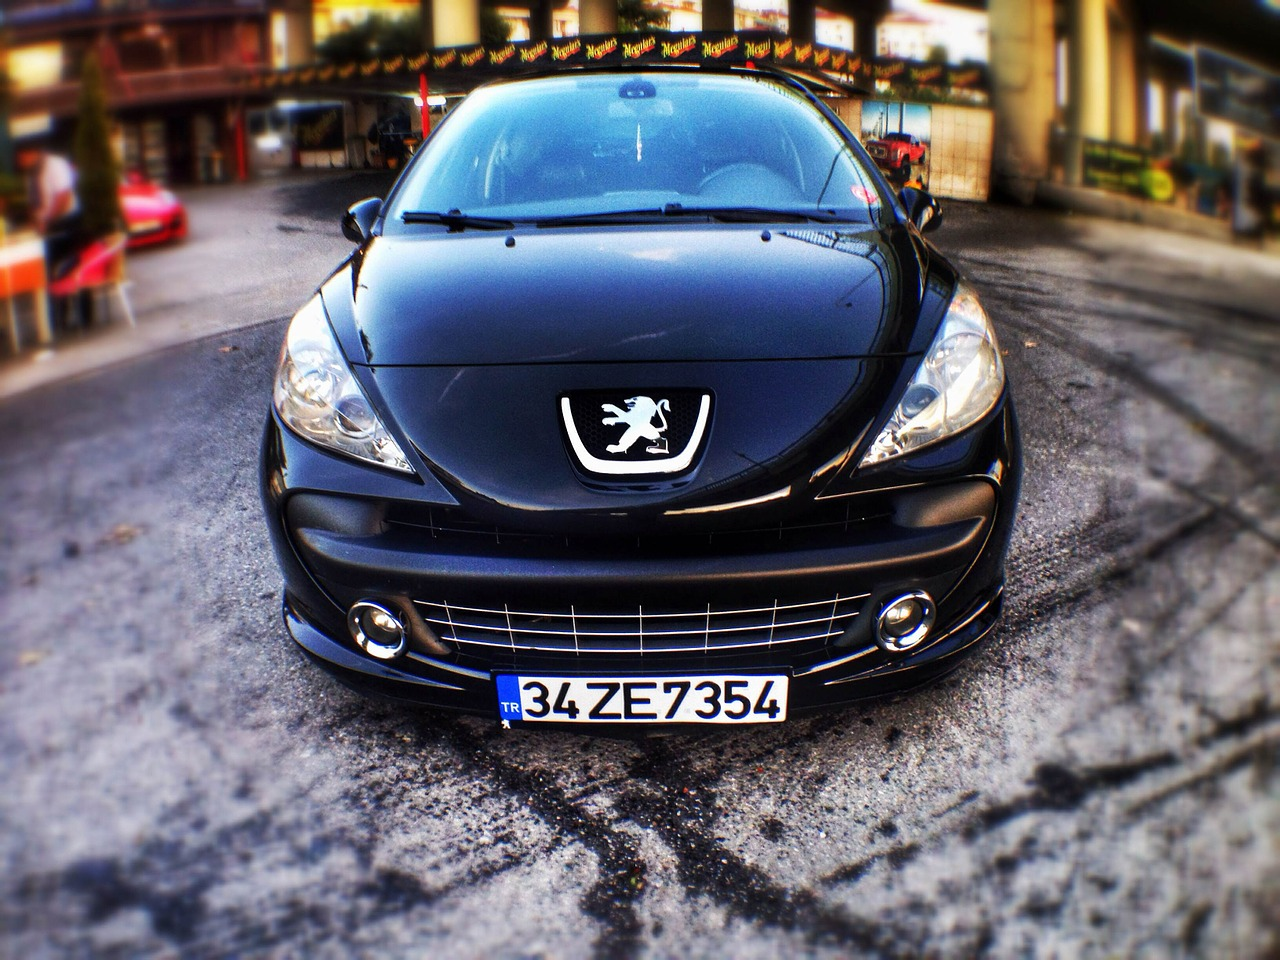 peugeot car black free photo